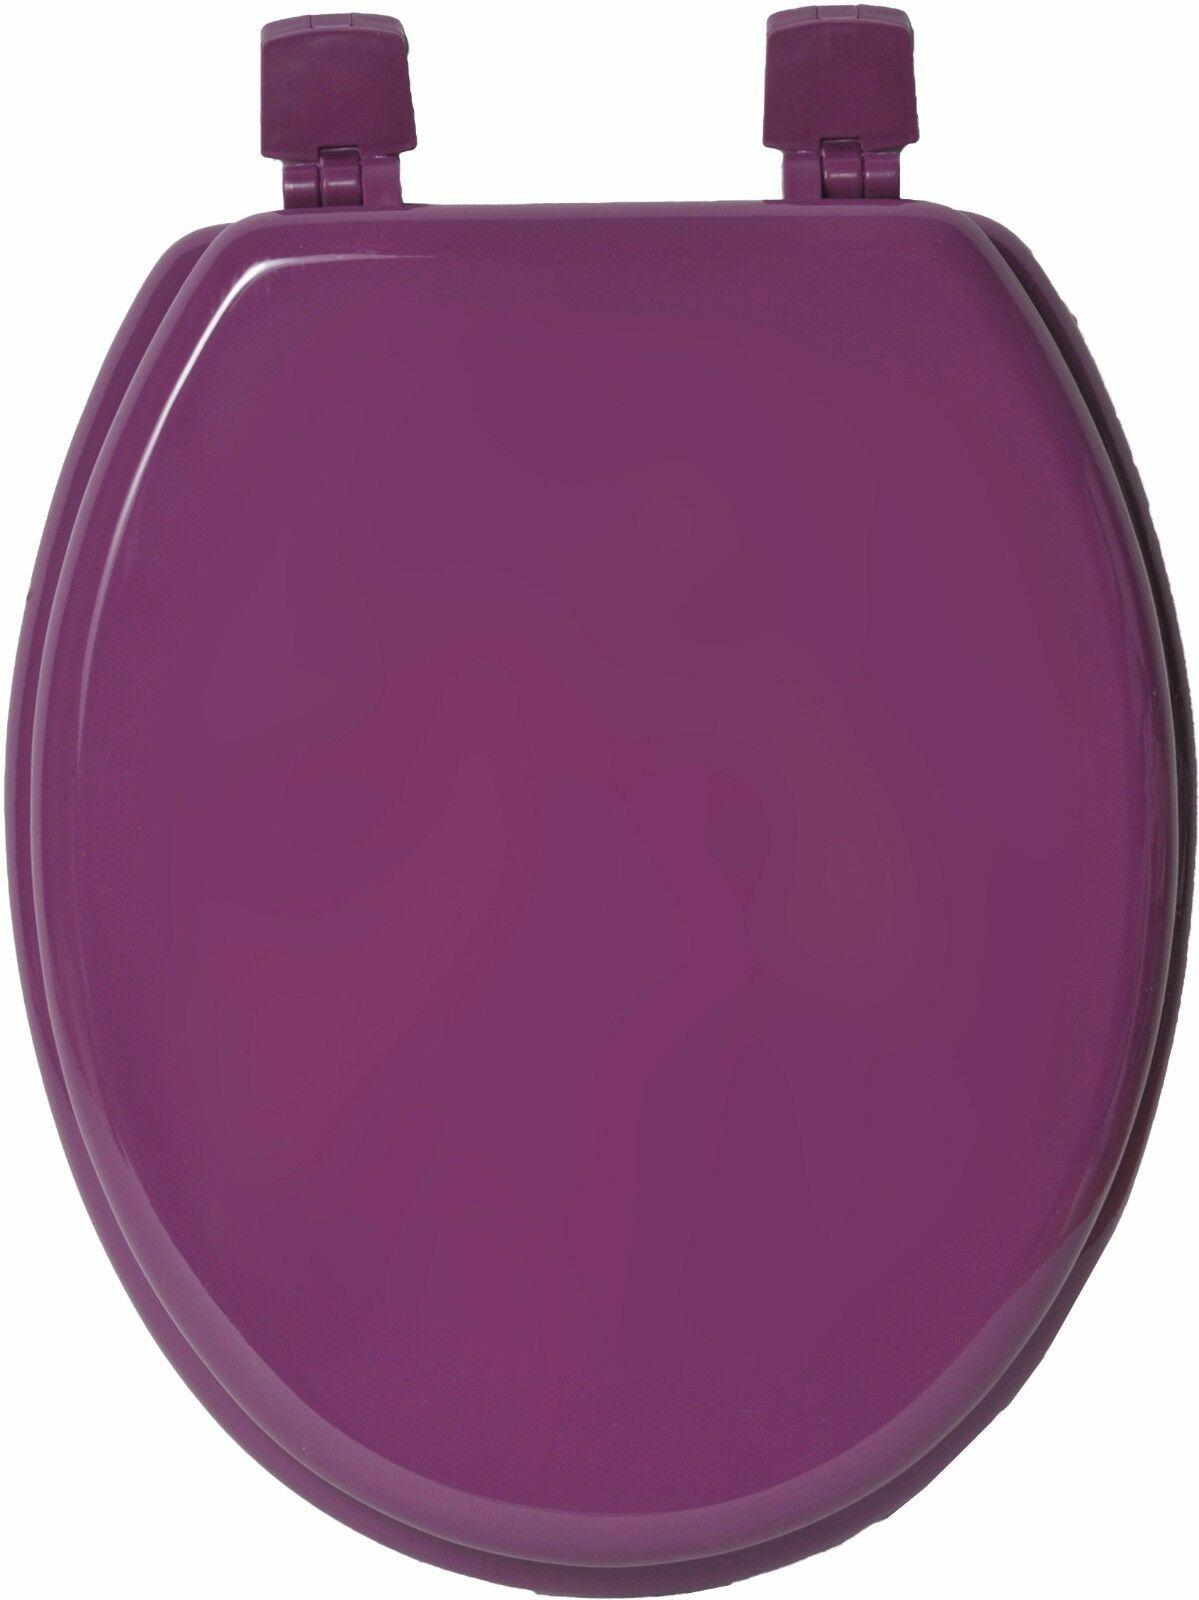 EVIDECO Elongated Toilet Seat Solid Solid Solid Farbe rot, lila  Wood, 17.5 L X 14.75 W 987bc4